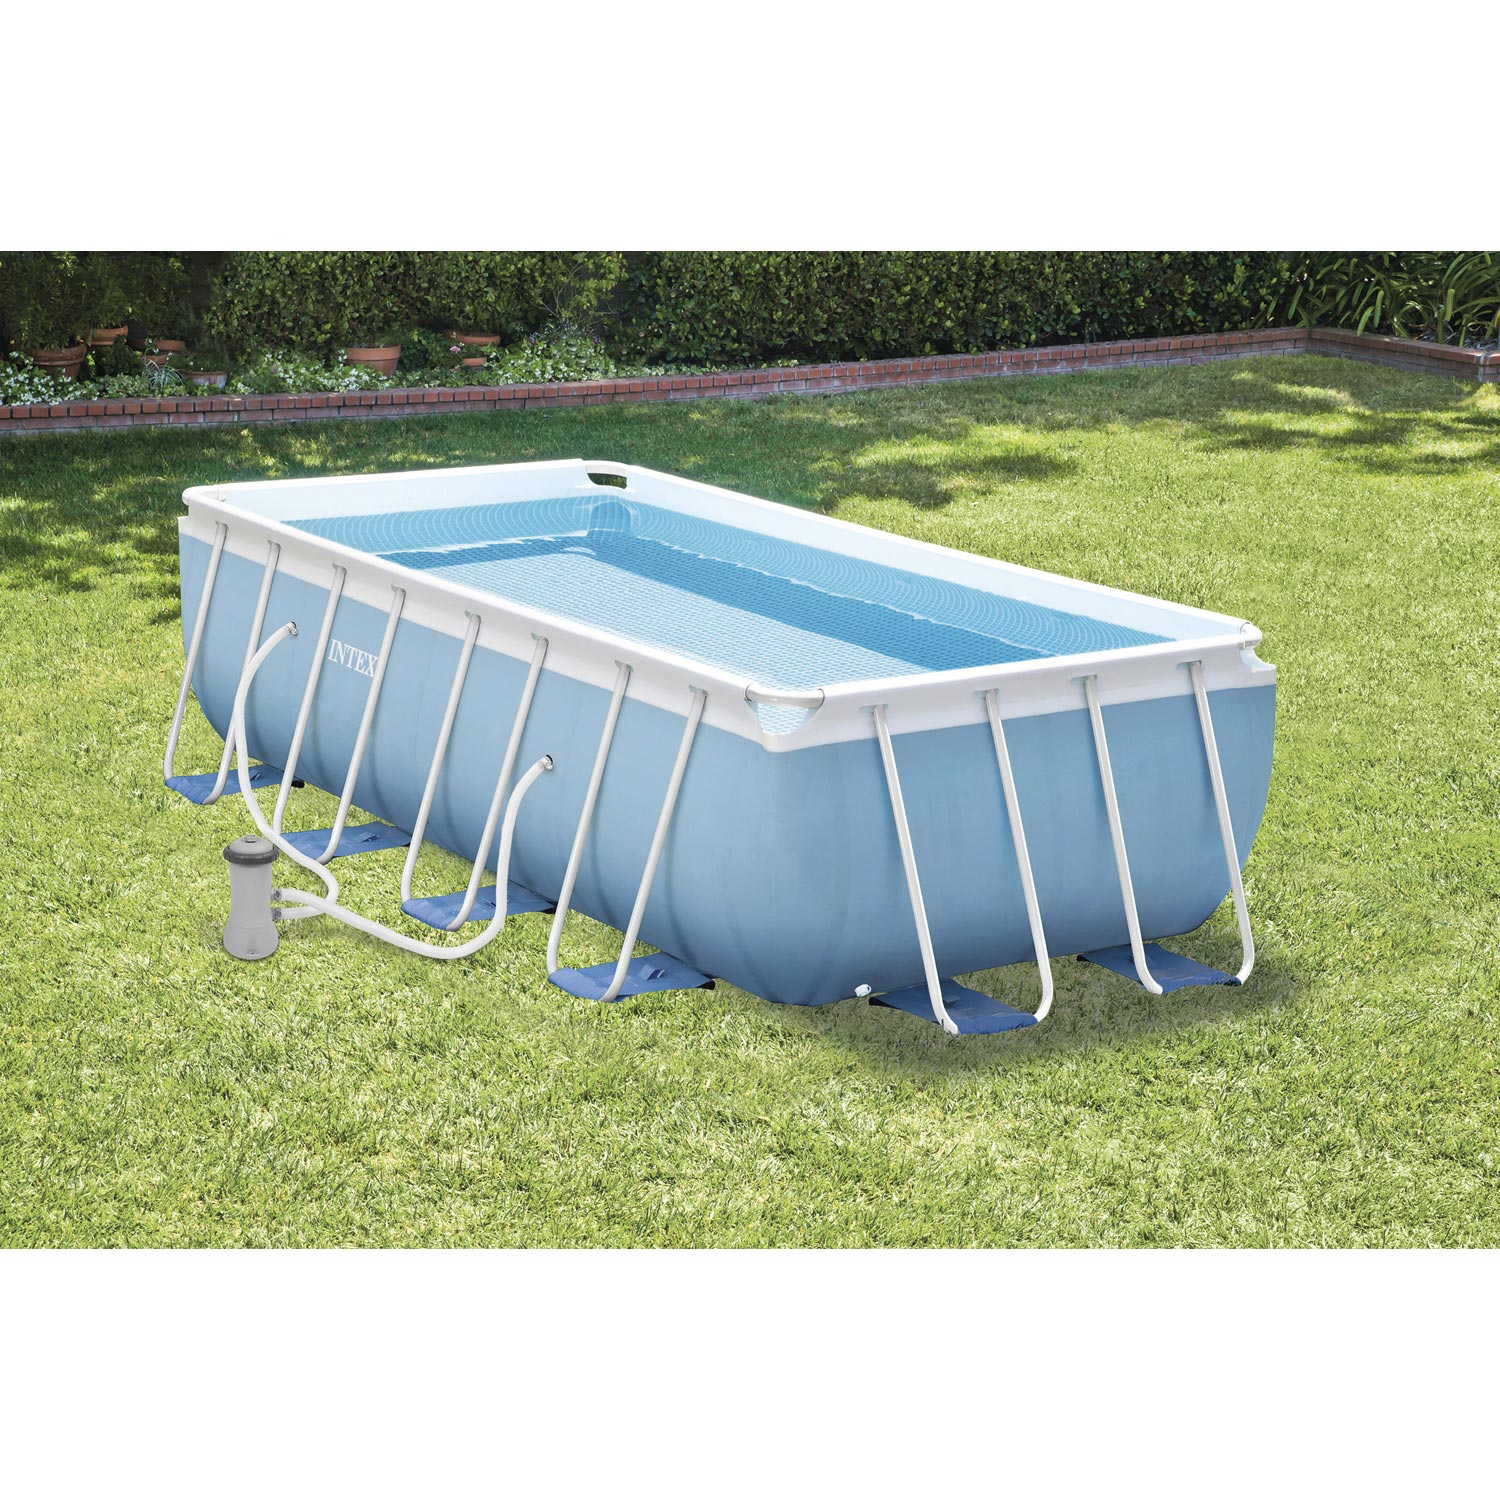 Piscine hors sol autoportante tubulaire prism frame intex for Aspirateur piscine leroy merlin